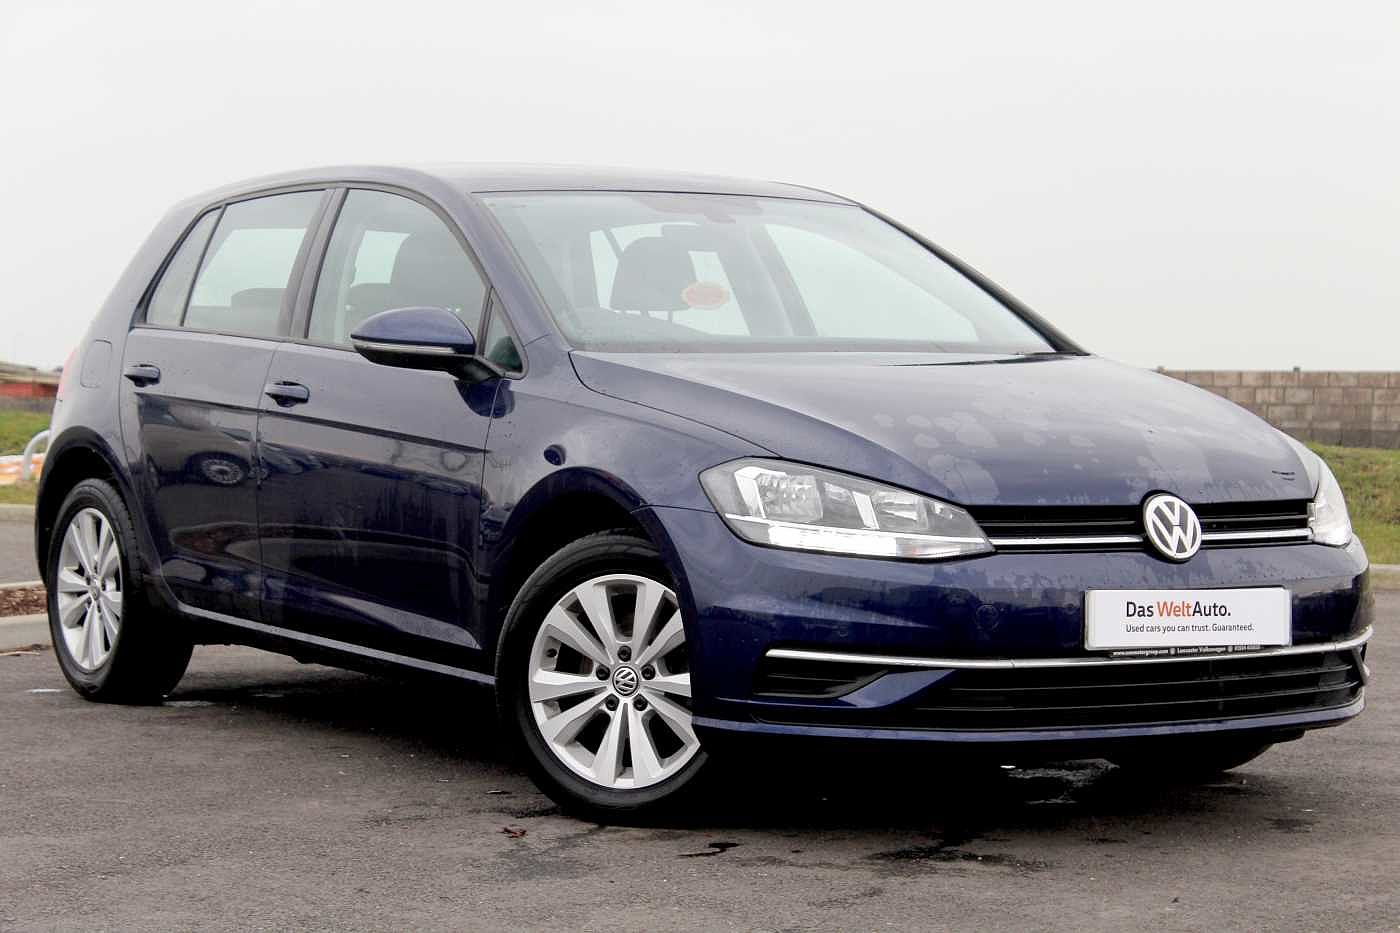 Volkswagen Golf MK7 Facelift 1.4 TSI SE Nav 125PS 5dr